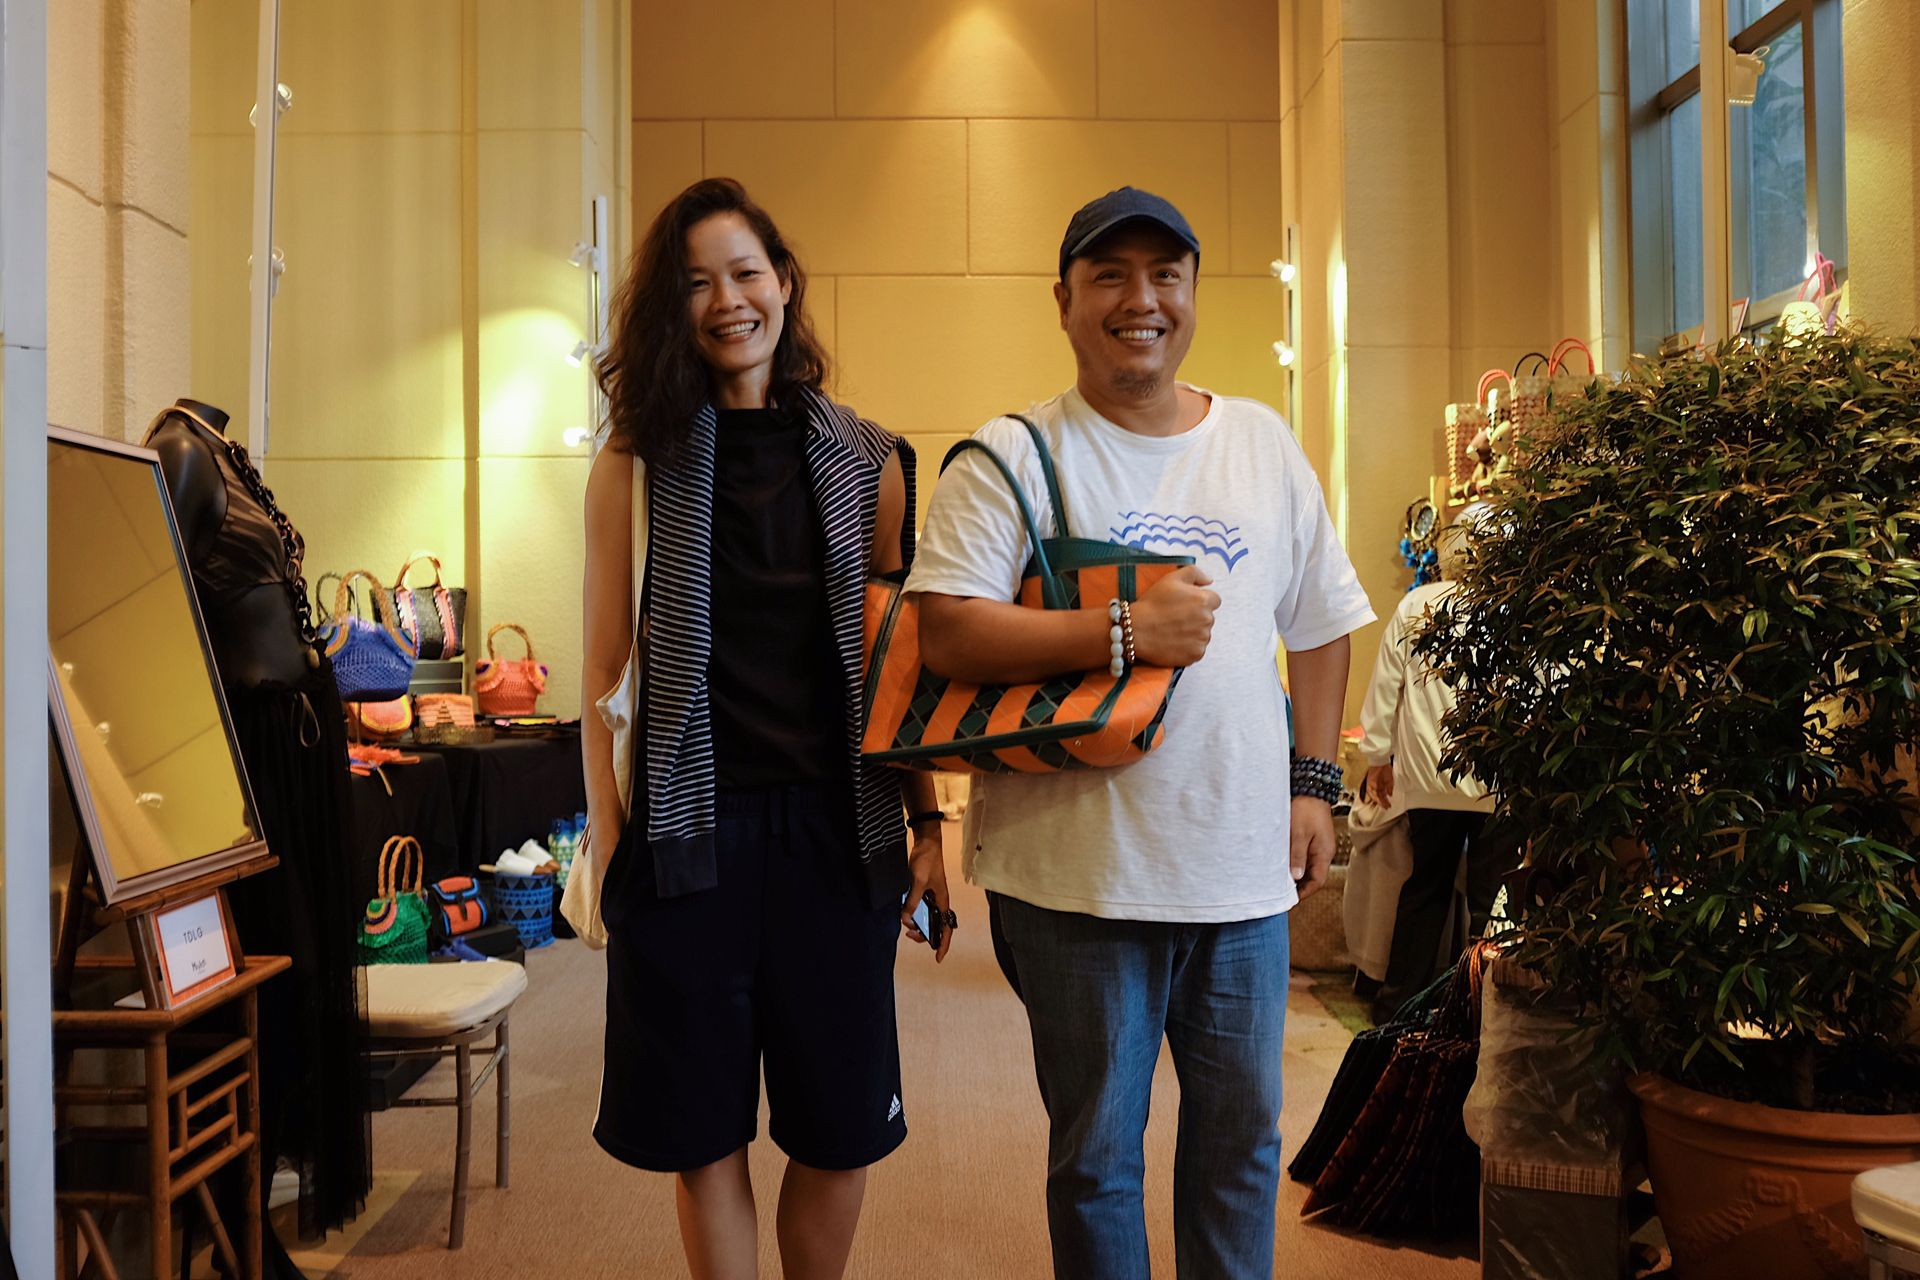 Model-Photographer Joanne Bitangcol with fashion editor Luis Espiritu